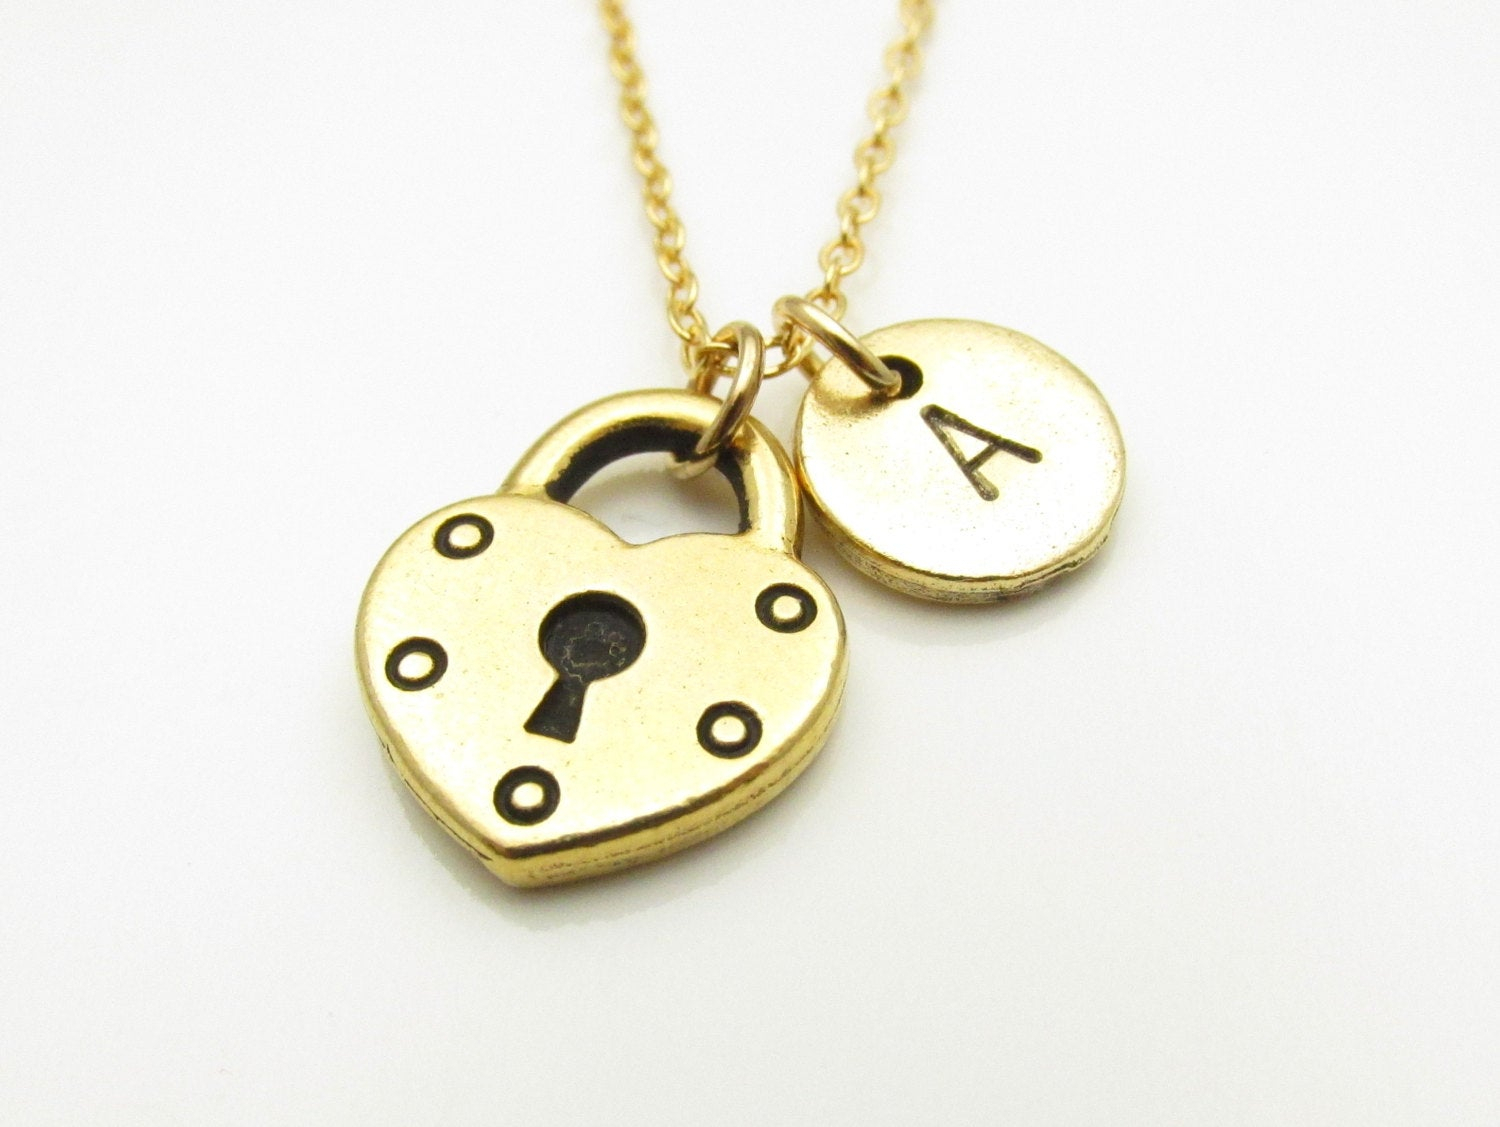 Heart Padlock Necklace, Gold Heart Shaped Lock Charm, Initial In Most Recent Heart Shaped Padlock Necklaces (Gallery 19 of 25)